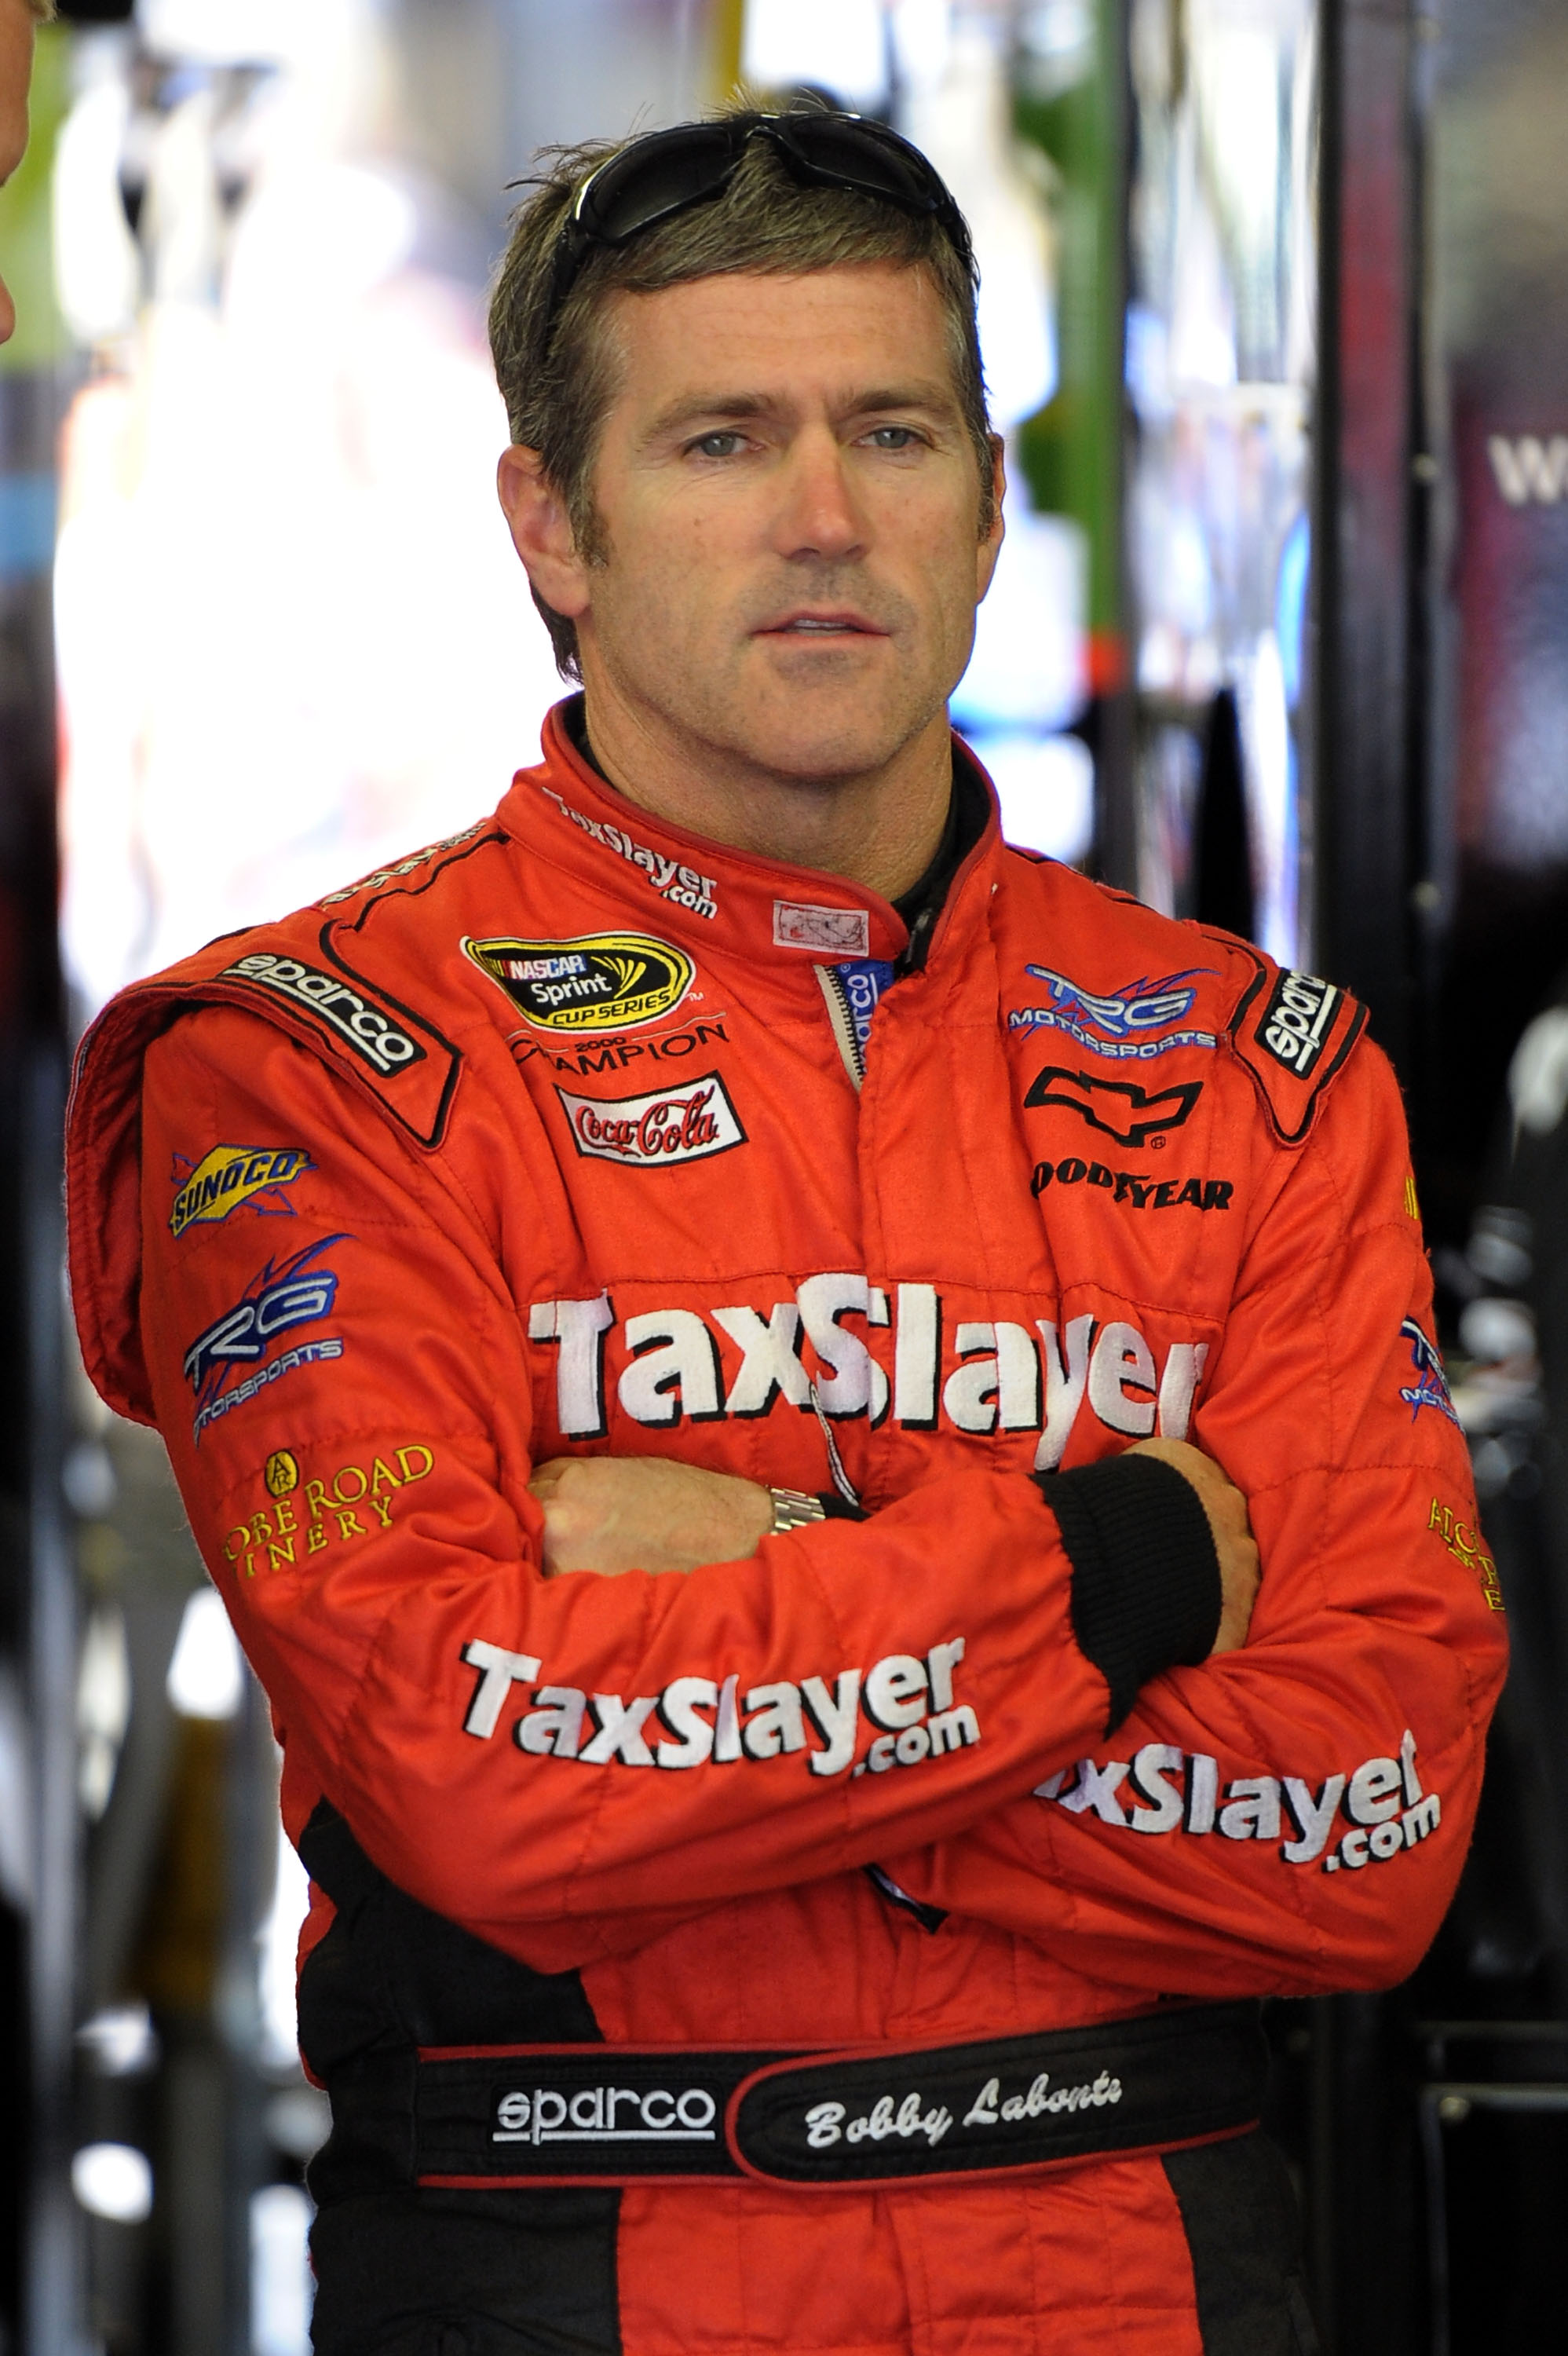 LOUDON, NH - JUNE 26:  Bobby Labonte, driver of the #7 SpeedFactory.TV Toyota, stands in the garage during practice for the NASCAR Sprint Cup Series LENOX Industrial Tools 301 at New Hampshire Motor Speedway on June 26, 2010 in Loudon, New Hampshire.  (Ph